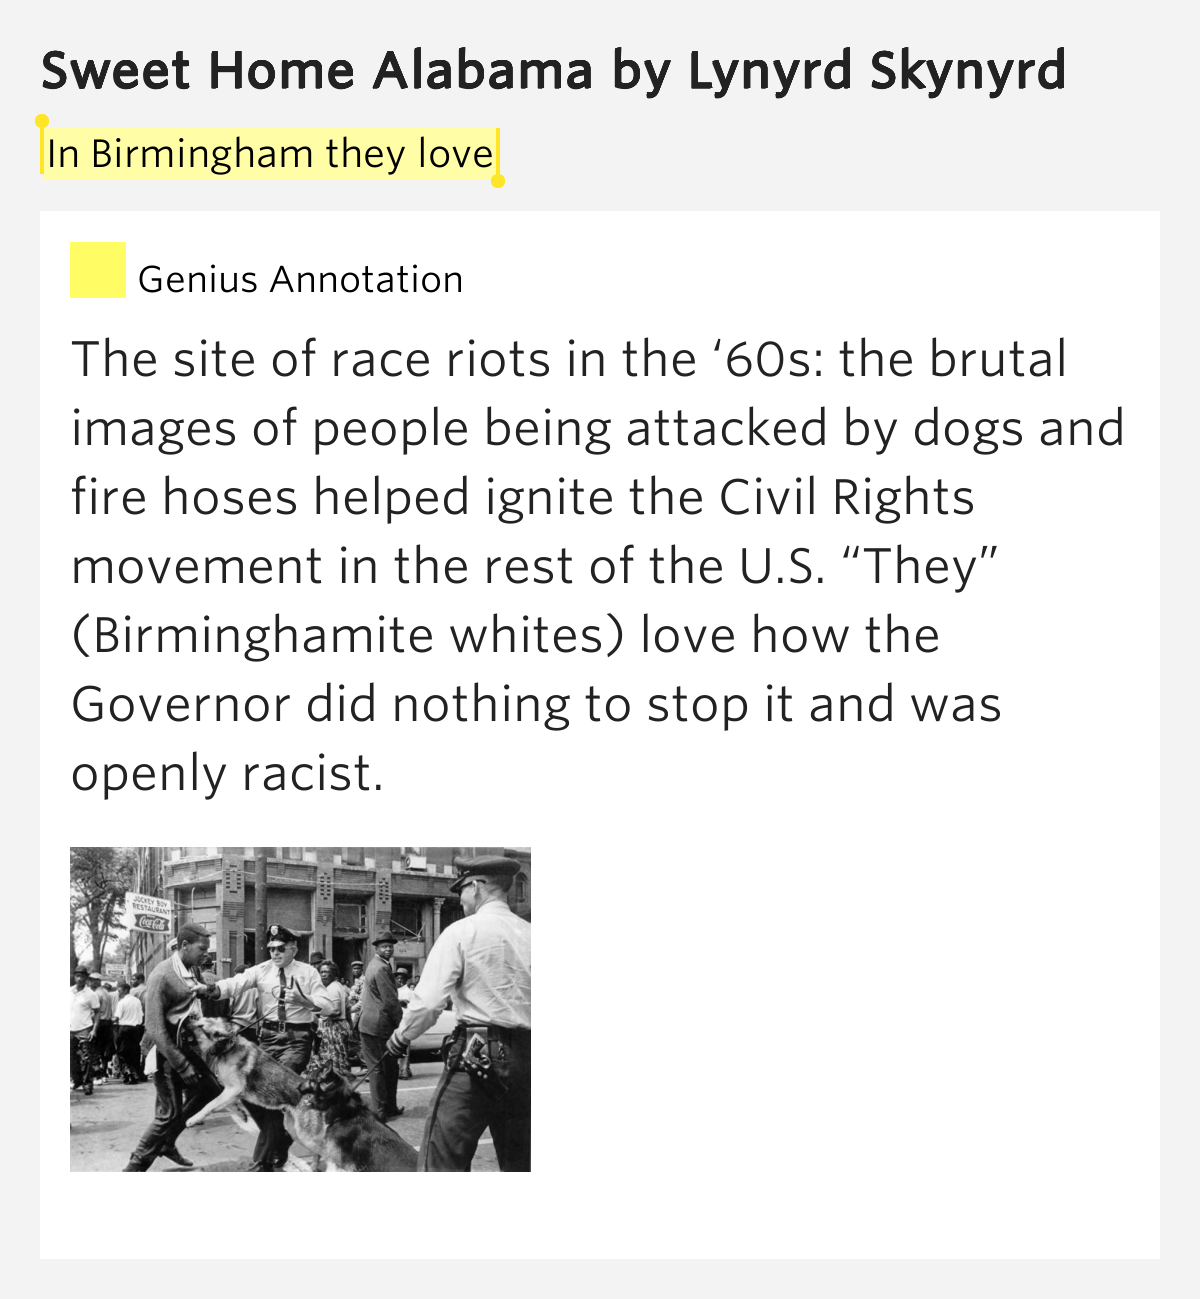 In birmingham they love sweet home alabama lyrics meaning for Who sang the song sweet home alabama